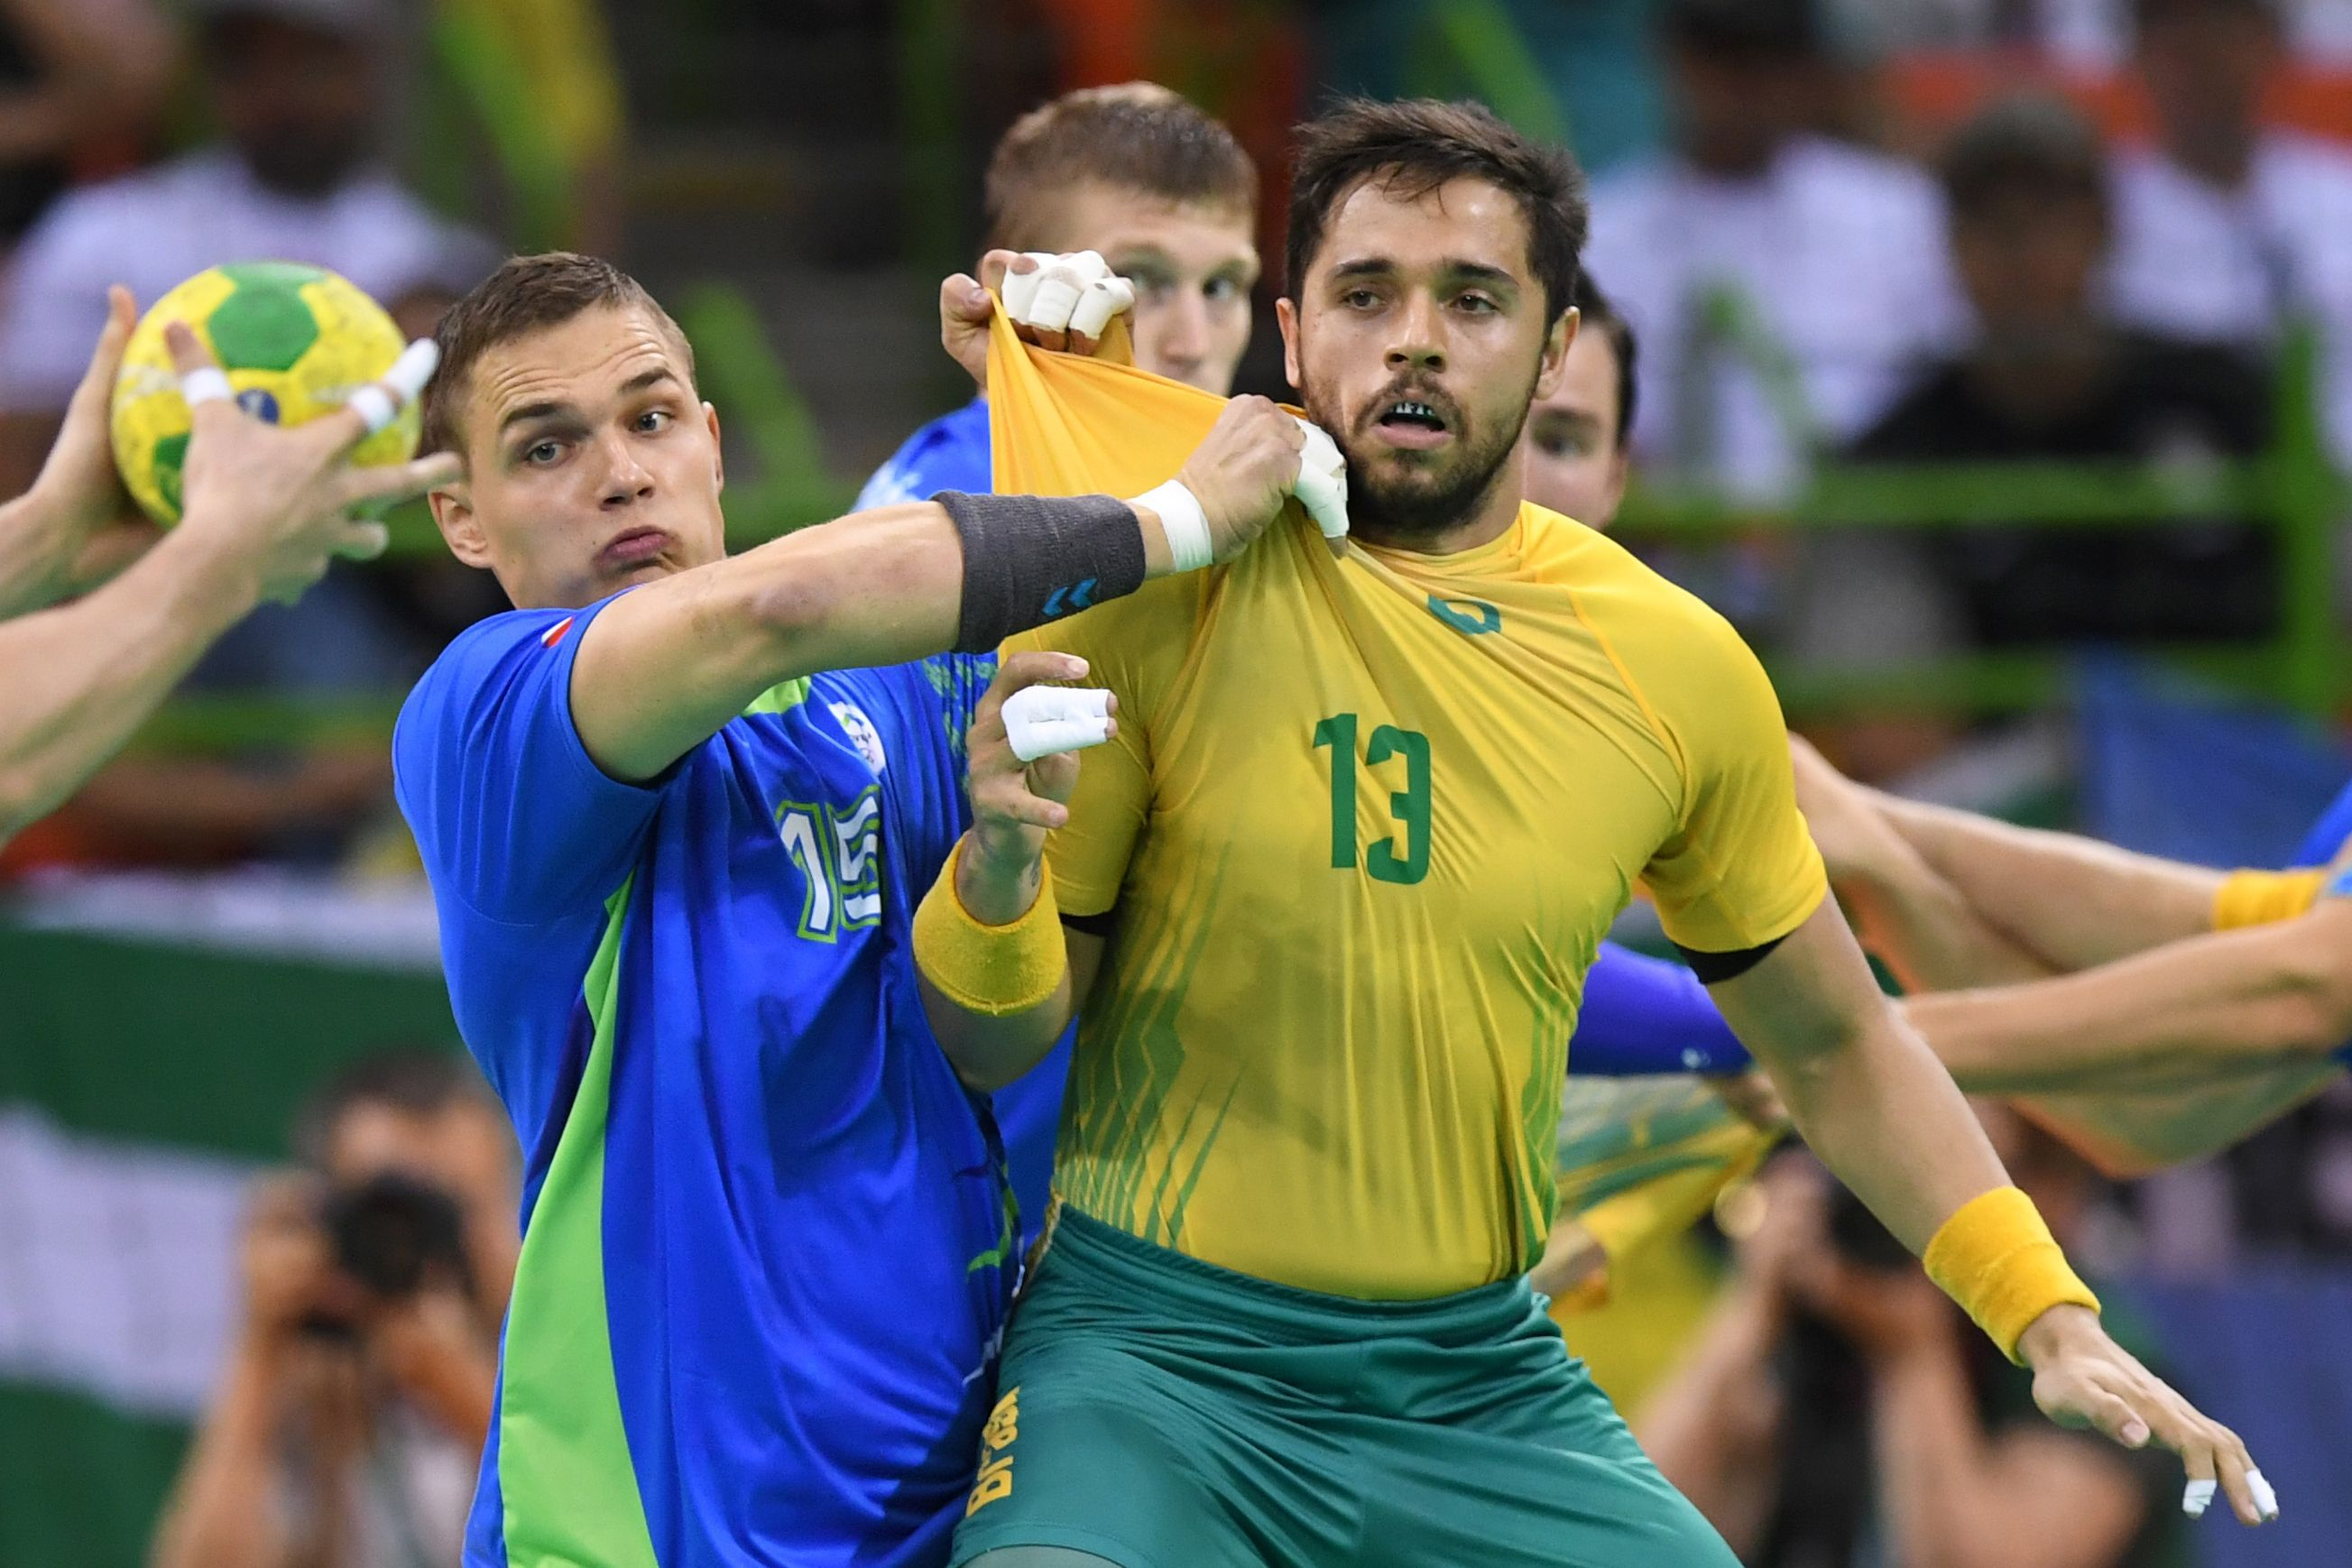 Slovenia's pivot Vid Poteko (left) vies with Brazil's center back Diogo Kent Hubner during their preliminary contest in men's handball at the Rio de Janeiro 2016 Olympics Games at the Future Arena on Tuesday.  | AFP-JIJI